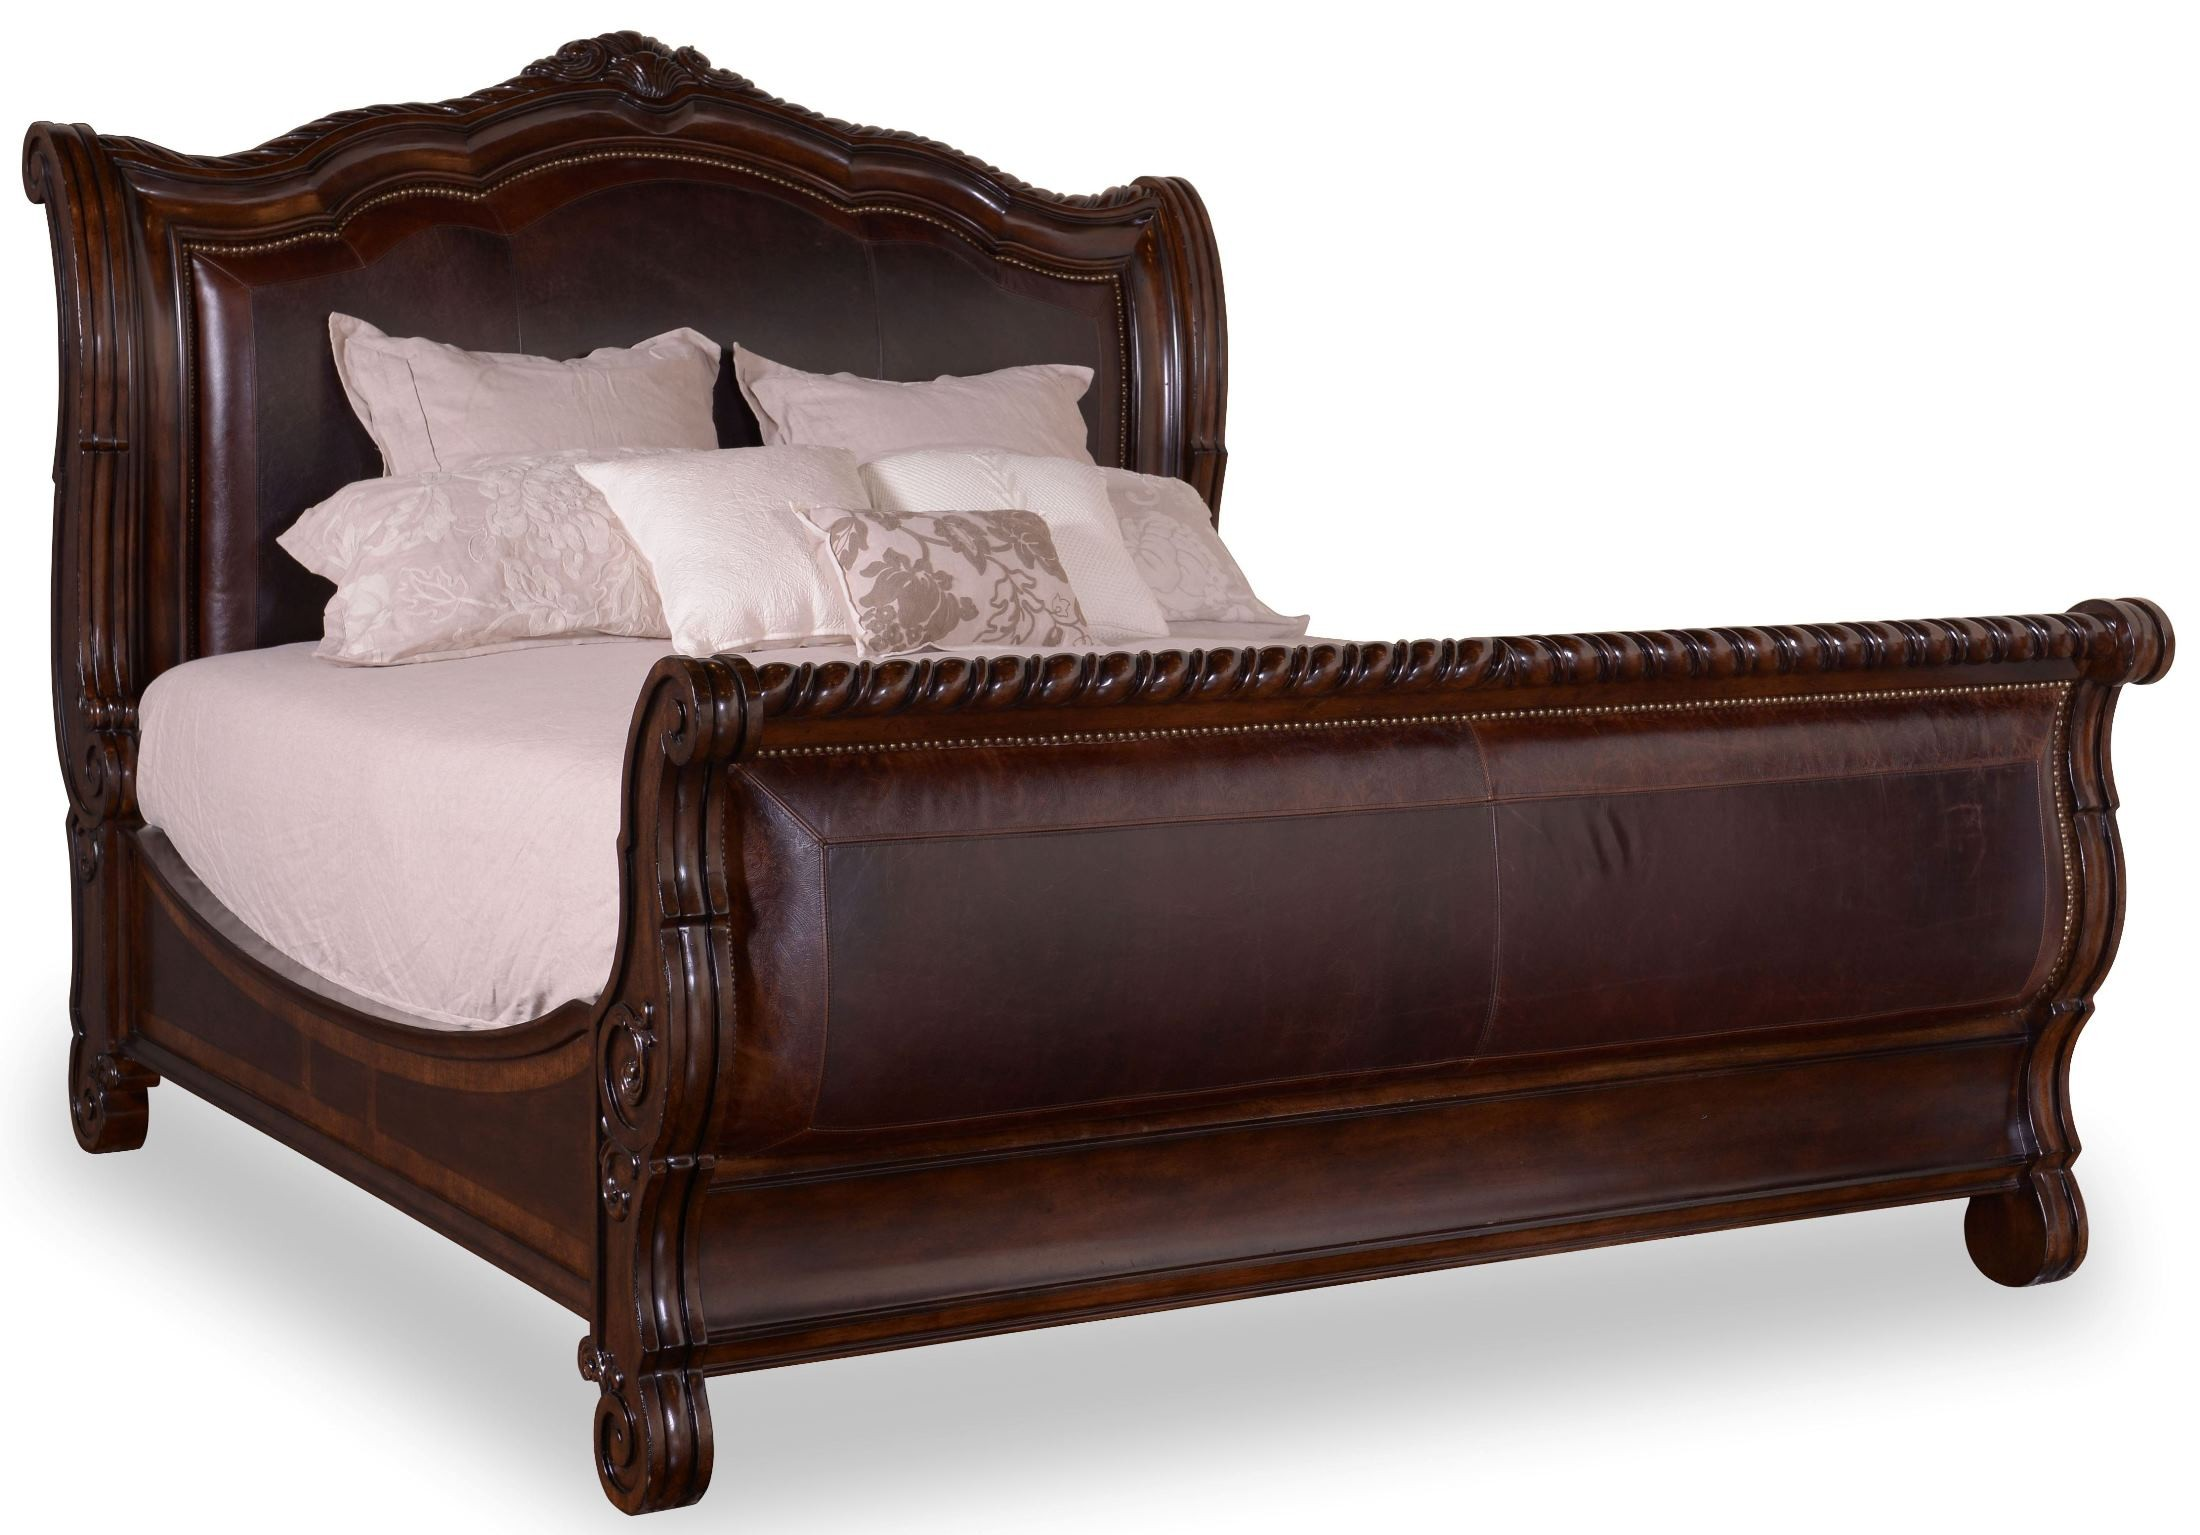 Valencia Cal King Upholstered Sleigh Bed From Art 209147